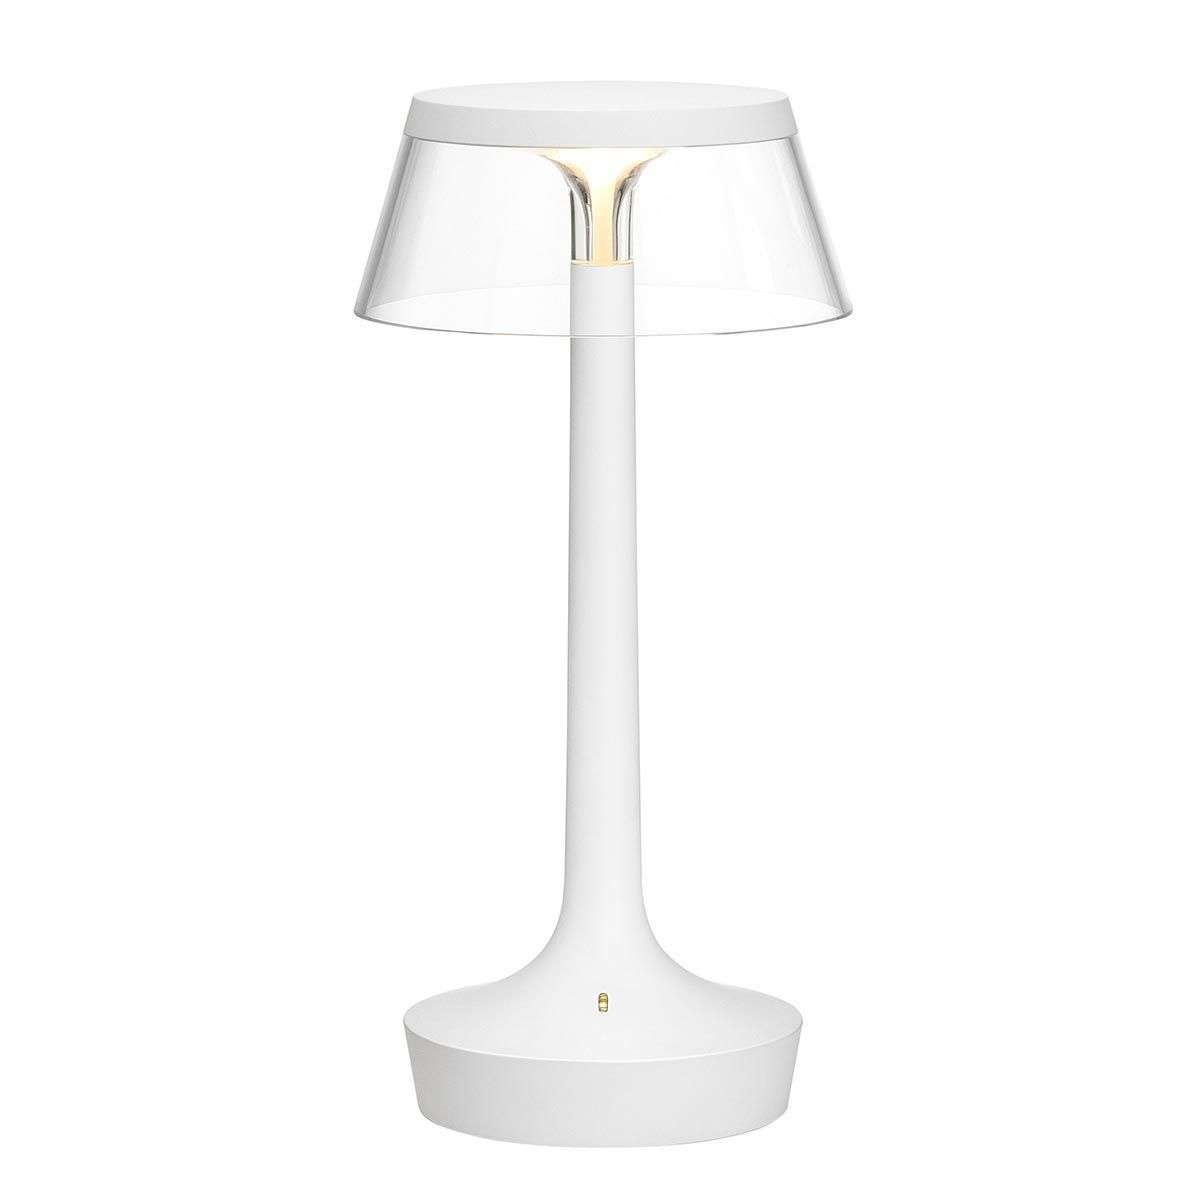 Rechargeable led table lamp bon jour unplugged lightscouk for 6 volt table lamp